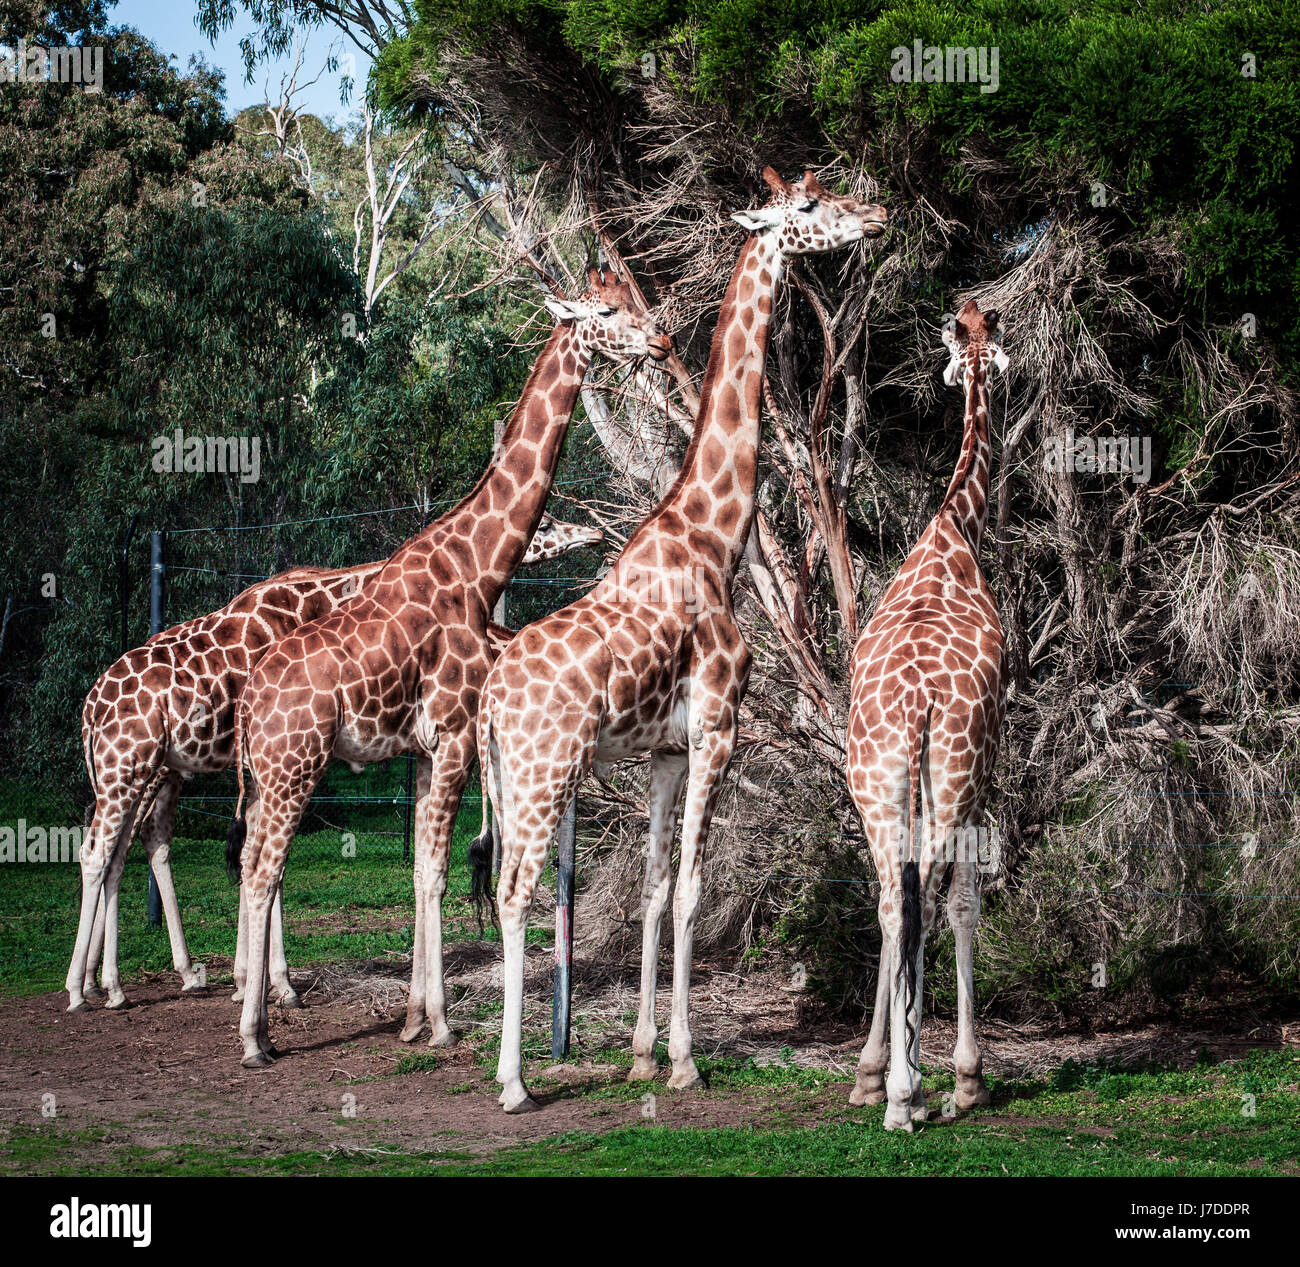 Four Giraffes feeding on Acacia tree - Stock Image